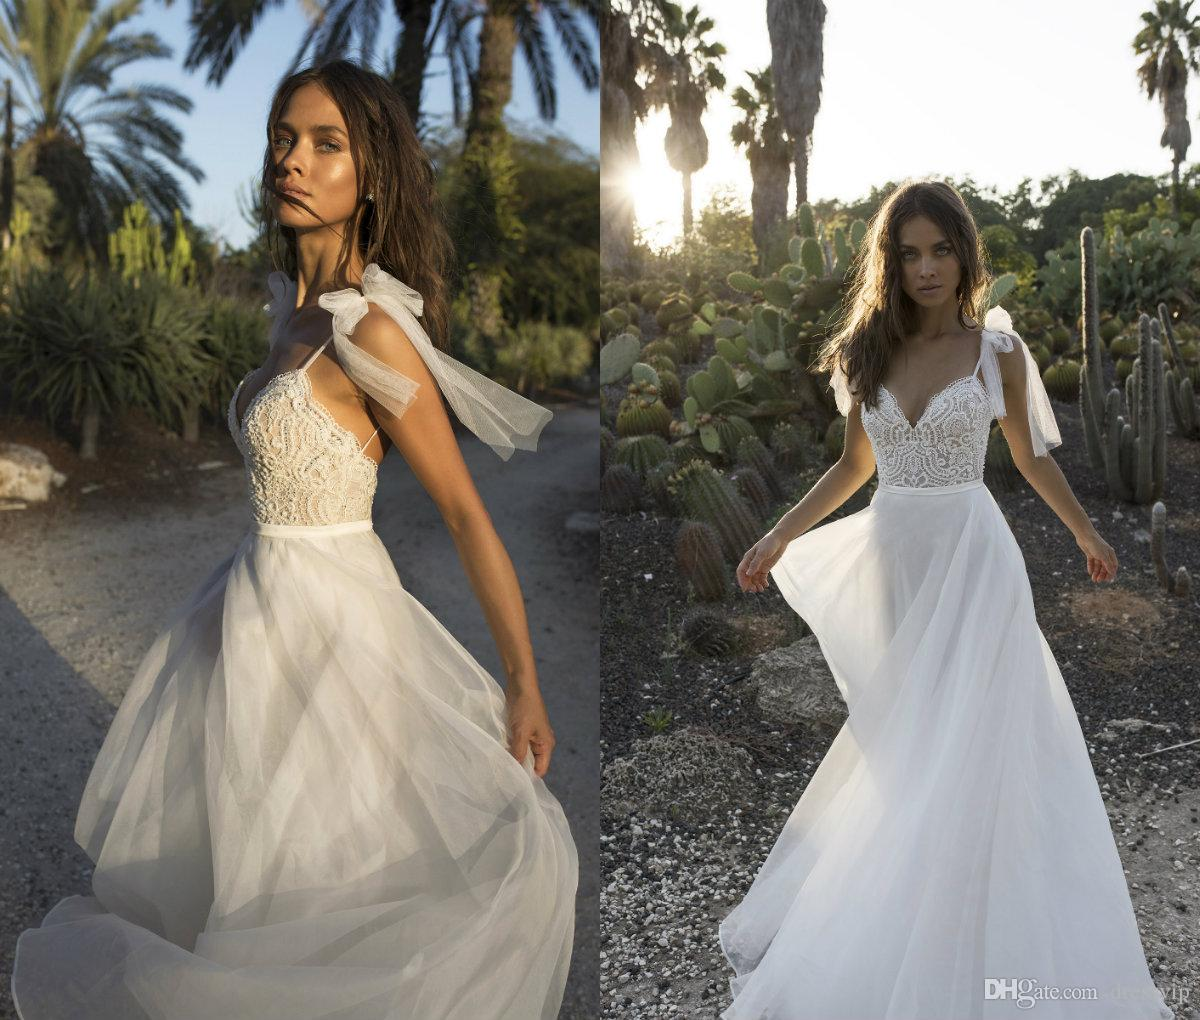 ac50b14c15f Discount 2018 Asaf Dadush Boho Wedding Dresses Backless Spaghetti Lace  Applique Beaded Pearls Beach Bridal Dress Cheap Wedding Gowns Plus Size Wedding  Dress ...